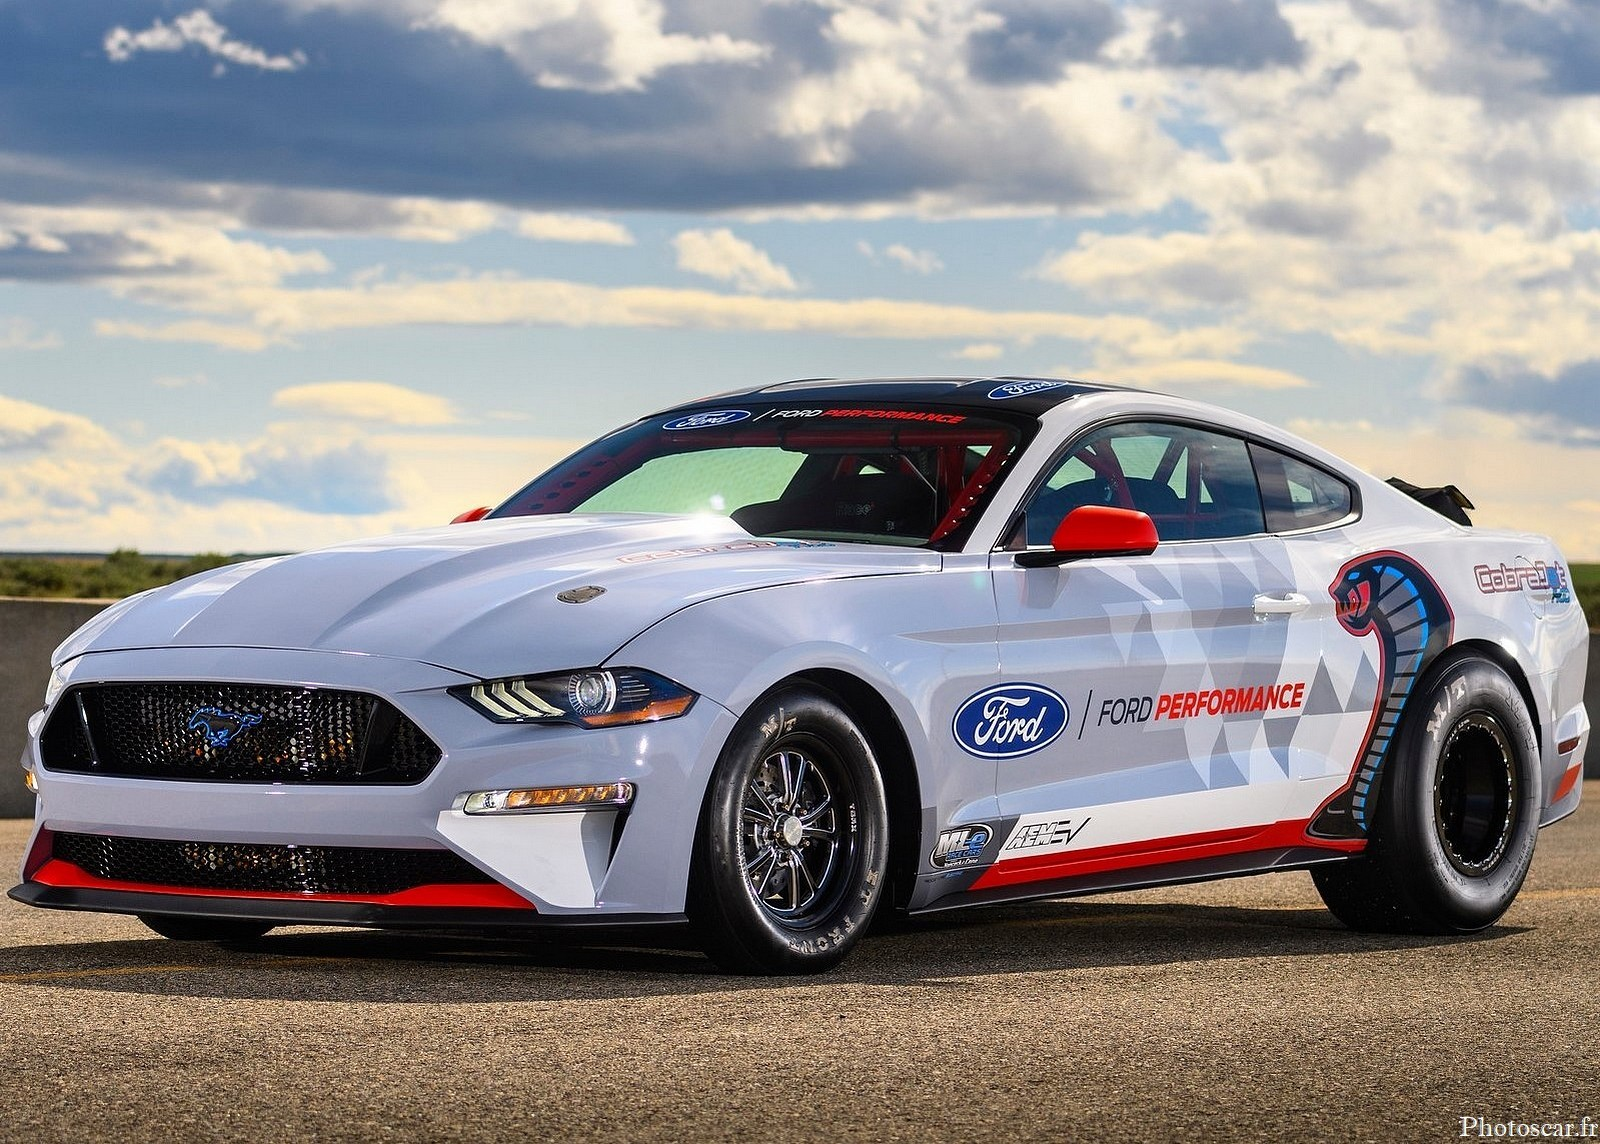 Ford Mustang Cobra Jet 1400 Concept 2020